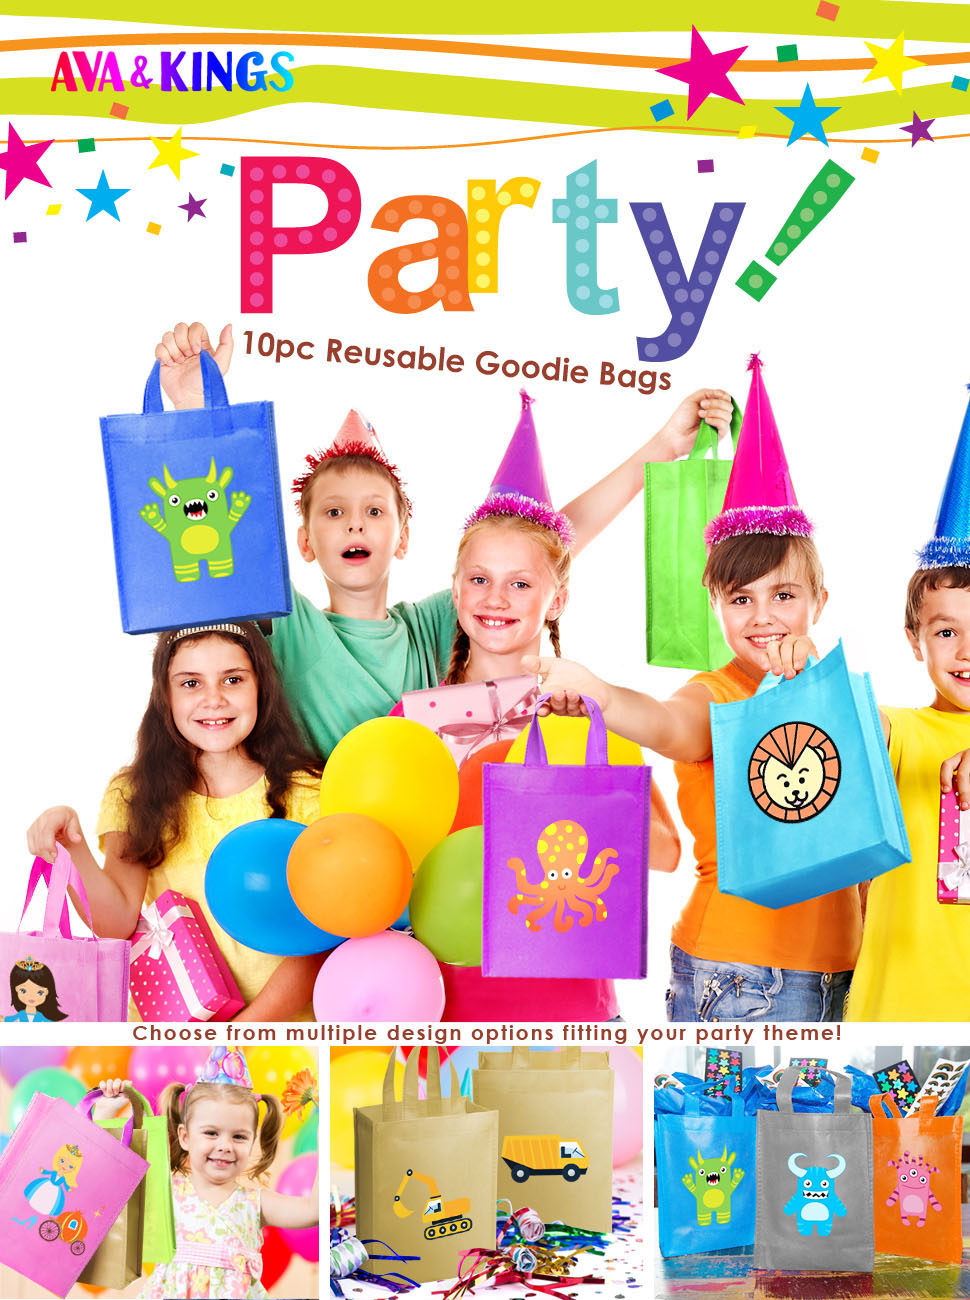 CASTLE PRINCESS PINK BIRTHDAY PARTY BAGS  RECYCLABLE LOOT TREAT FAVOUR GOODY BAG